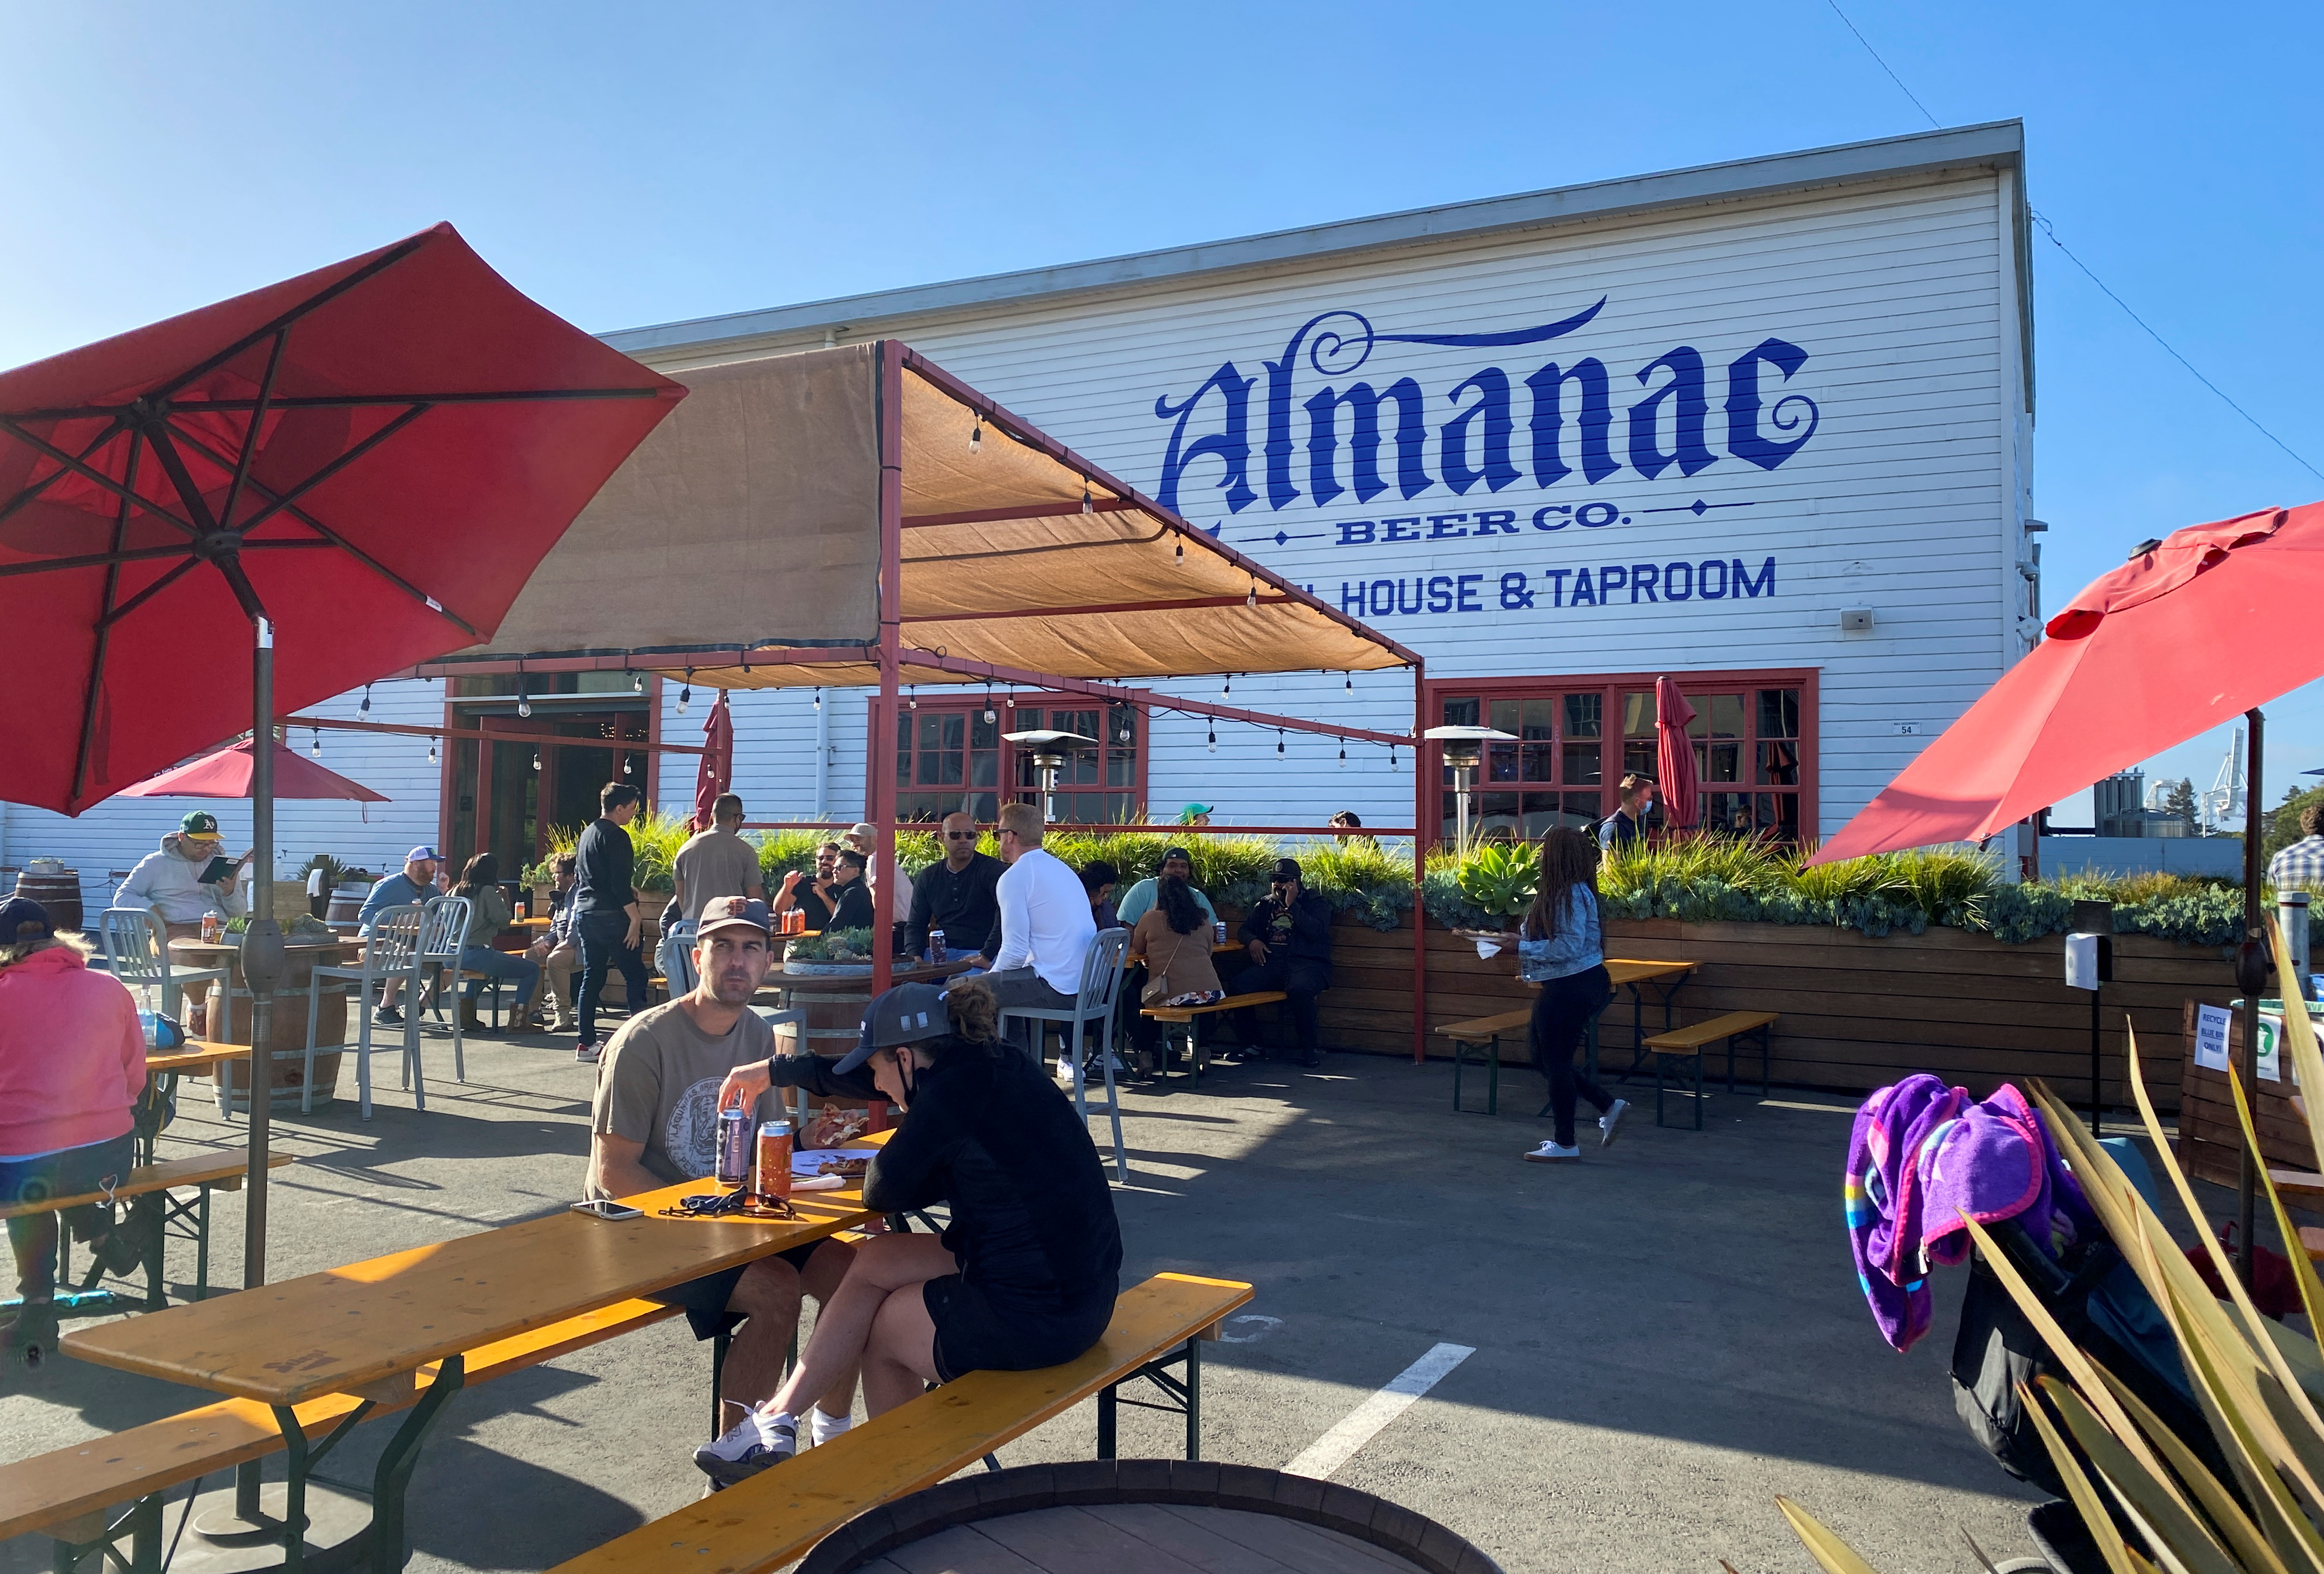 Customers drink, eat and talk at well-spaced tables on Almanac Taproom's former-parking lot-turned-pandemic-beer-garden in Alameda, California, U.S. June 4, 2021. REUTERS/Ann Saphir